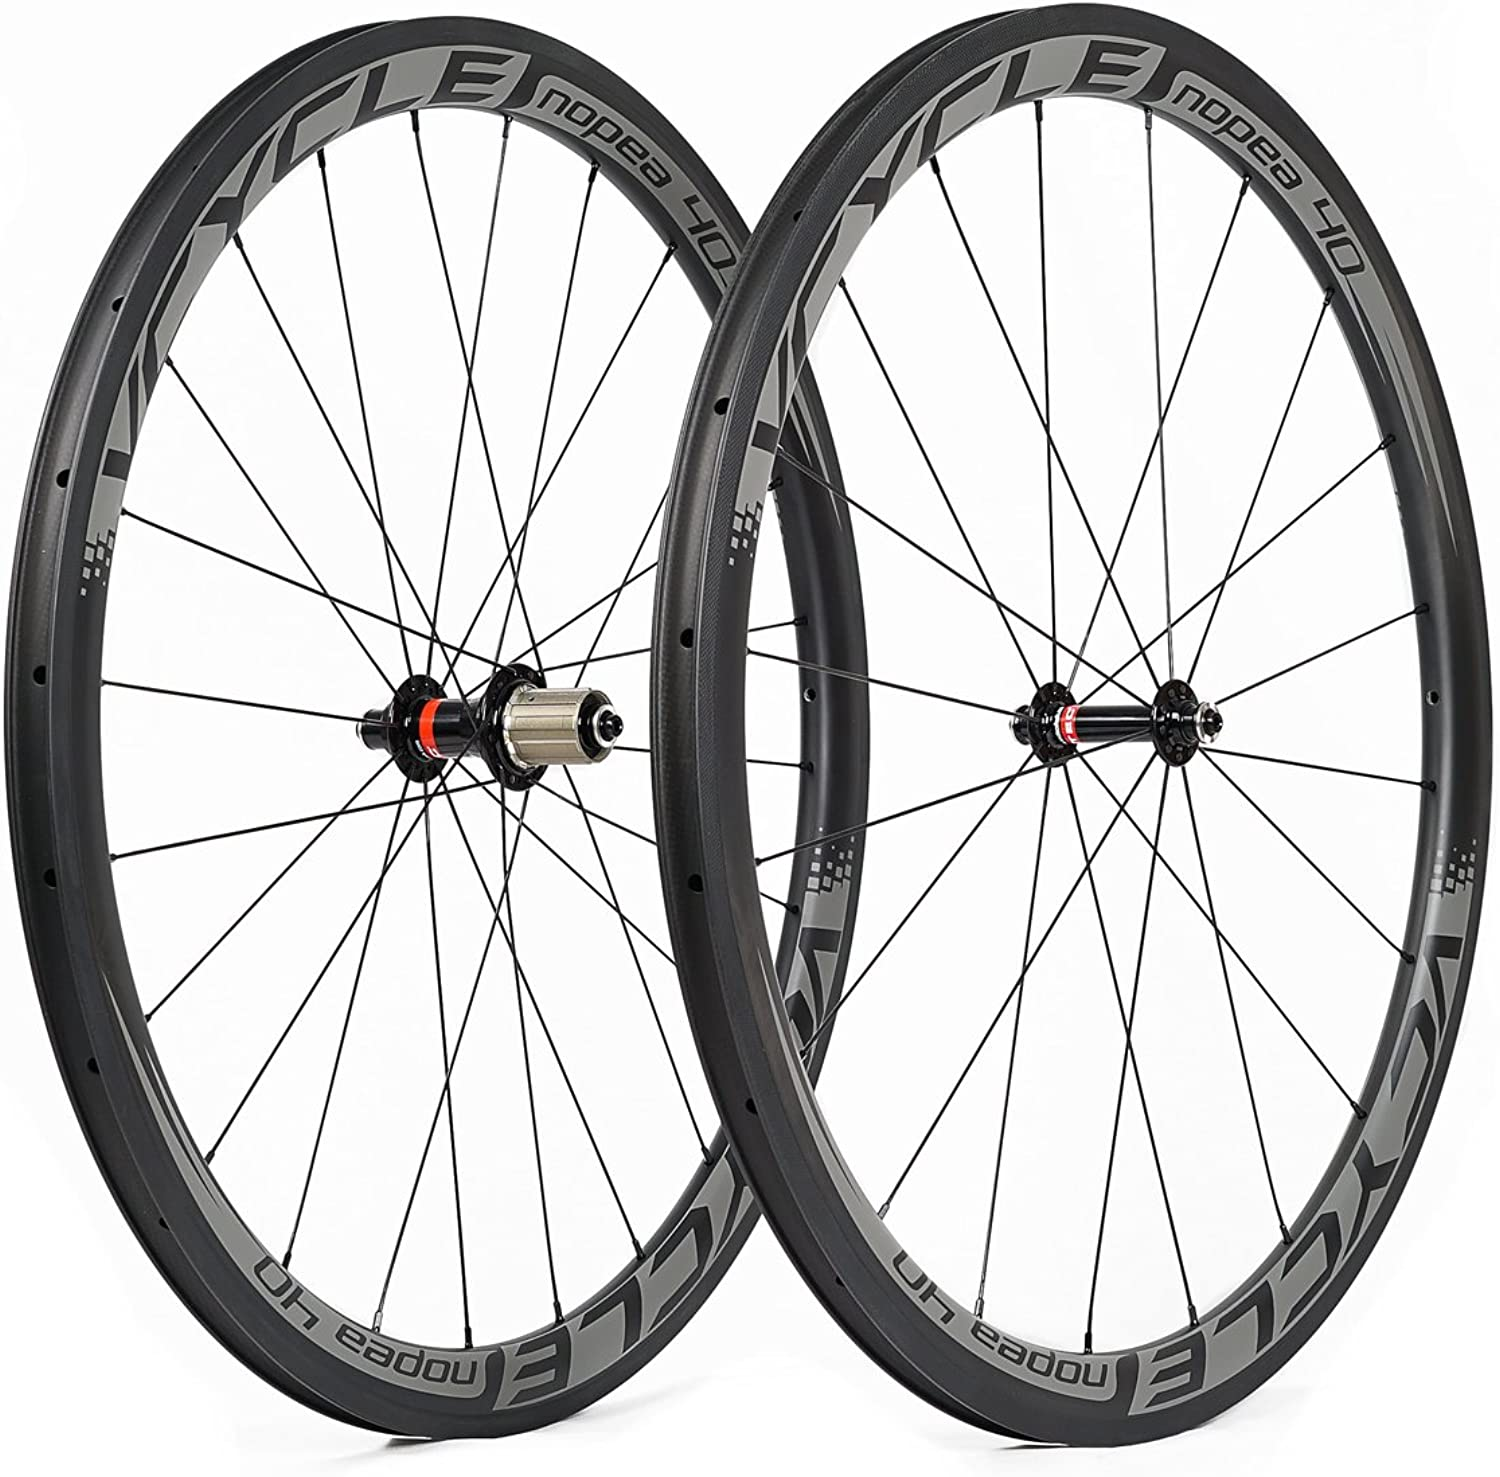 VCYCLE Halo 40mm Carbon Fiber Racing Road Bike Wheelset 700C in Bicycle Wheel 25mm Width Clincher Ultra Light Shimano or Sram 8 9 10 11 Speed